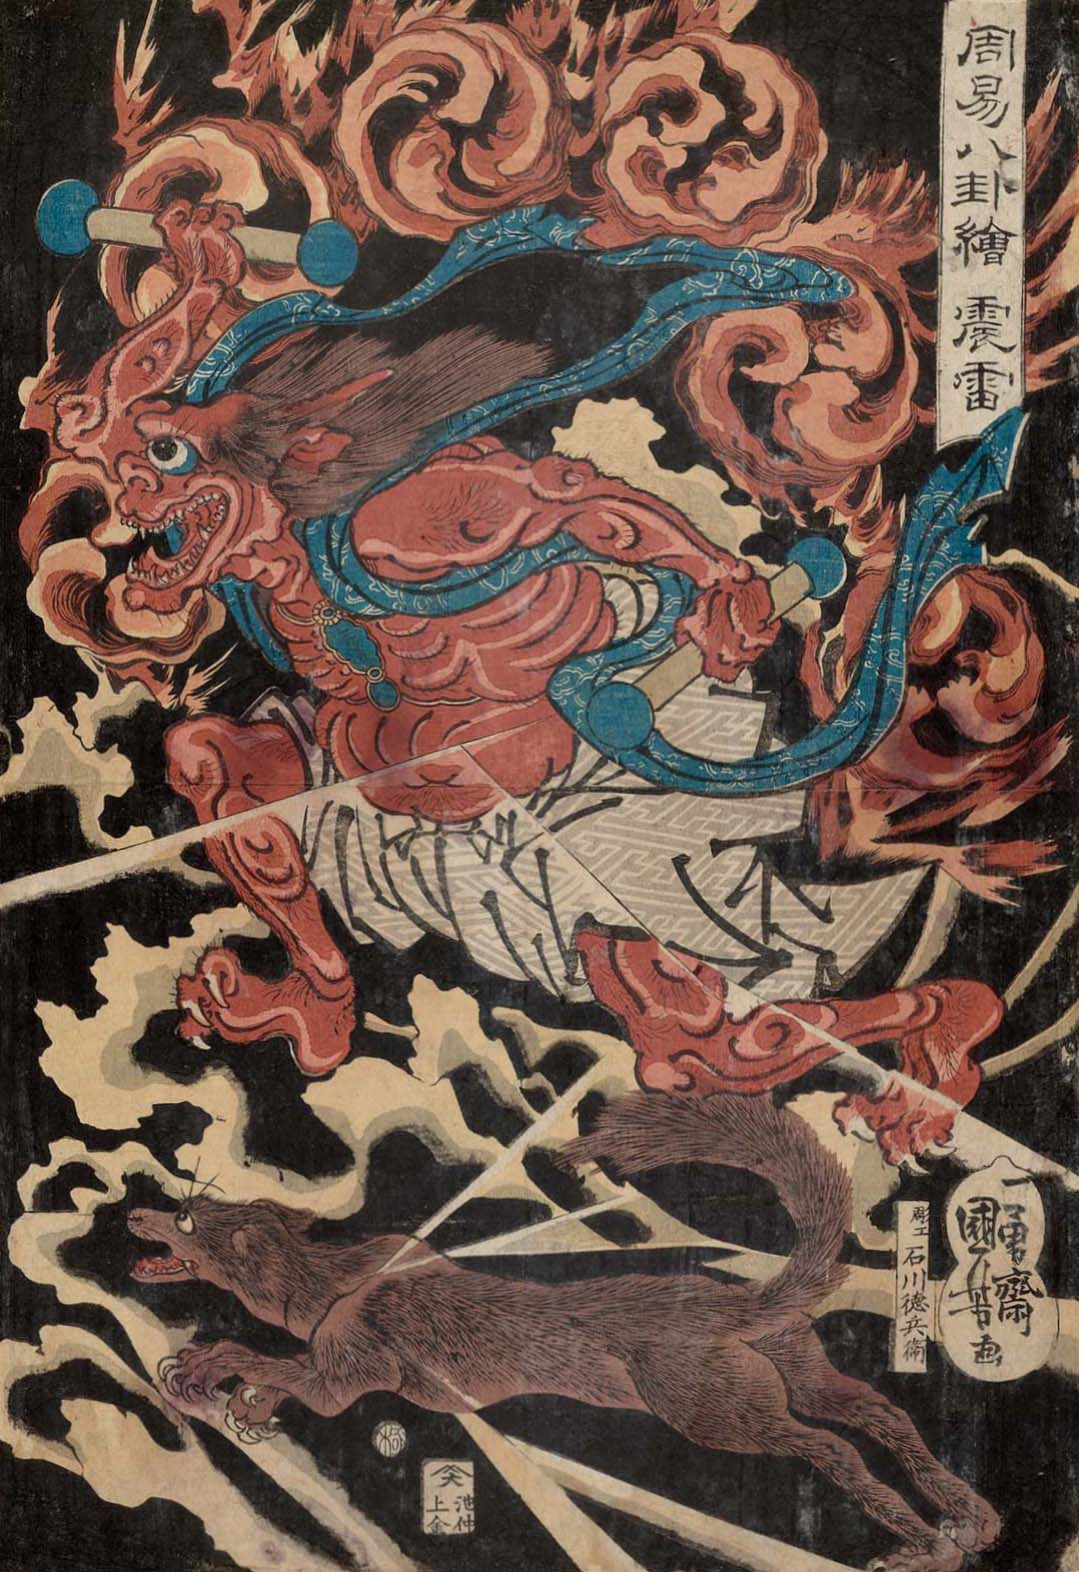 Utagawa Kuniyoshi - The Trigram Zhen or Thunder (Shin, kaminari), from the series Pictures of the Eight Trigrams in Chinese Divination (Shûeki hakke e)  1830's